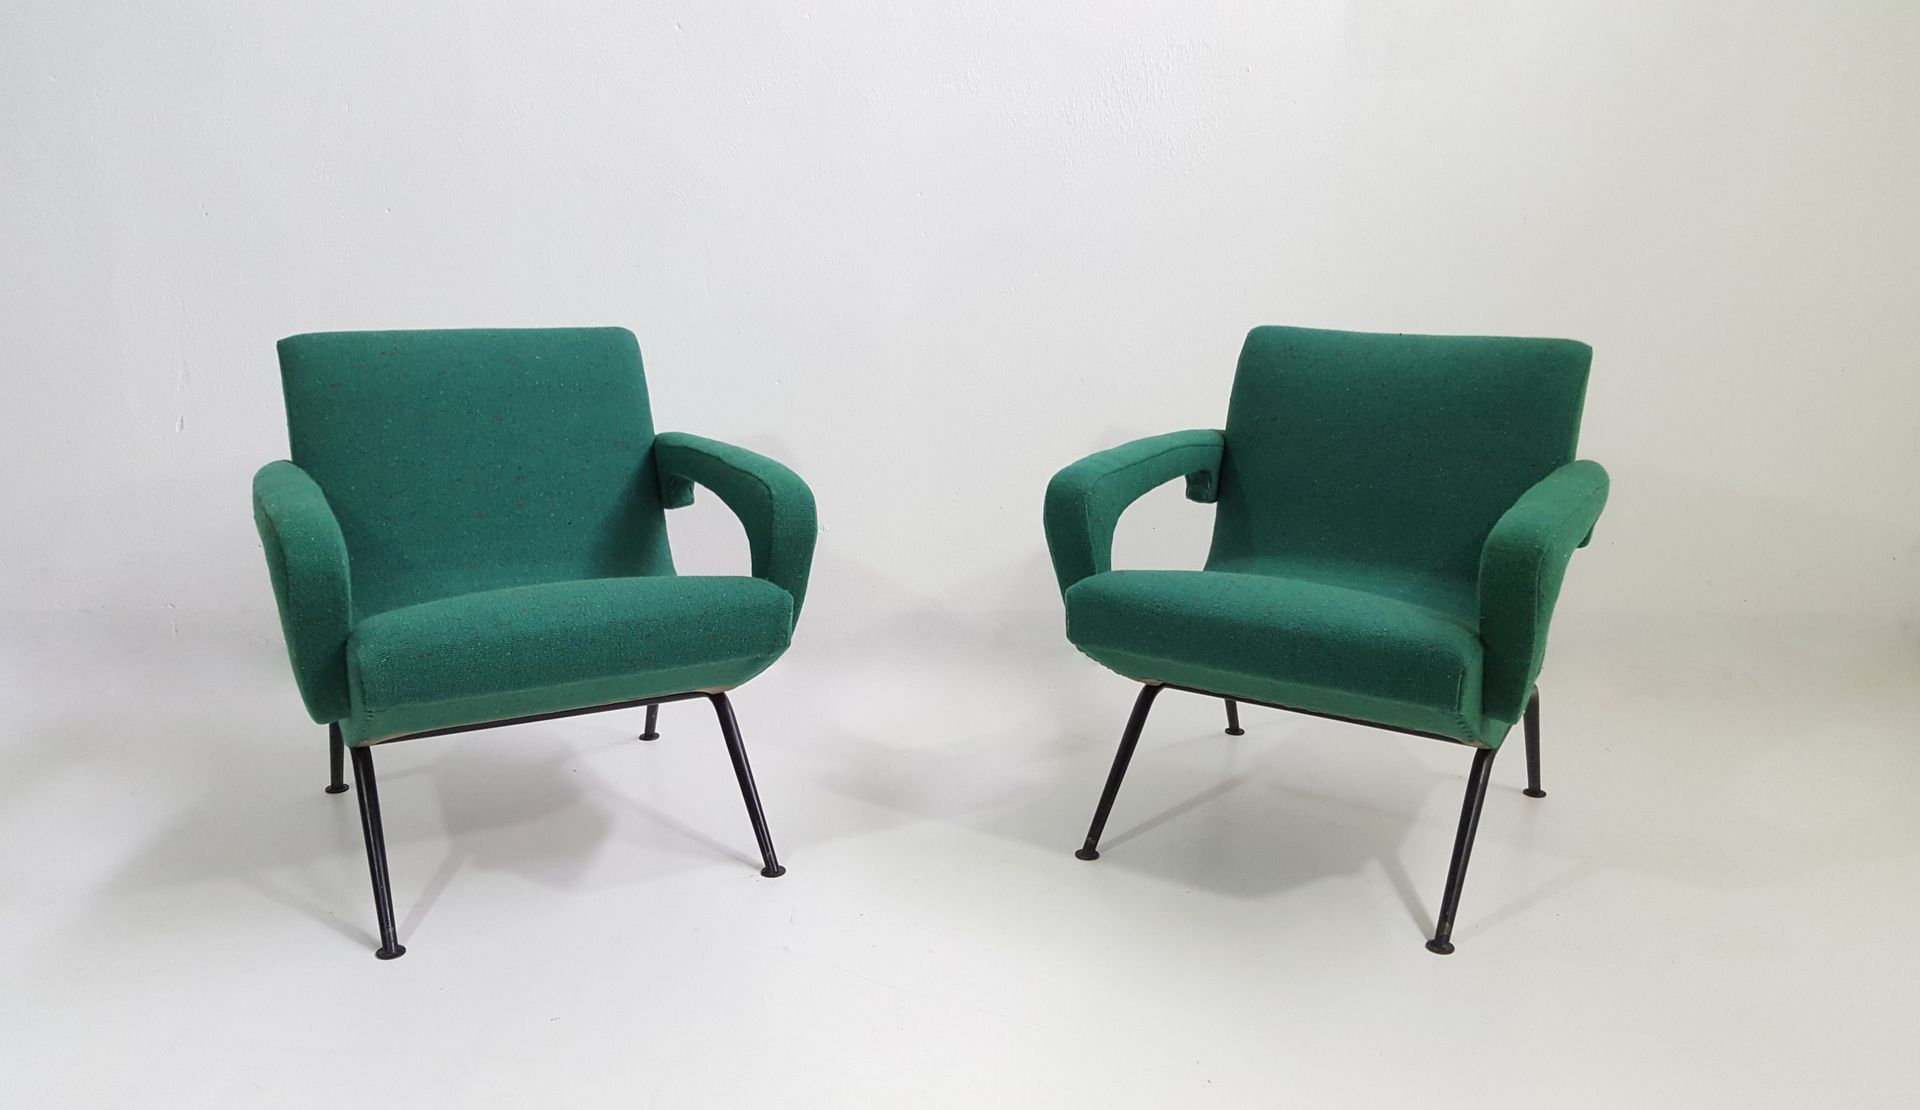 Green armchairs 1950s set of 2 for sale at pamono for 2 armchairs for sale